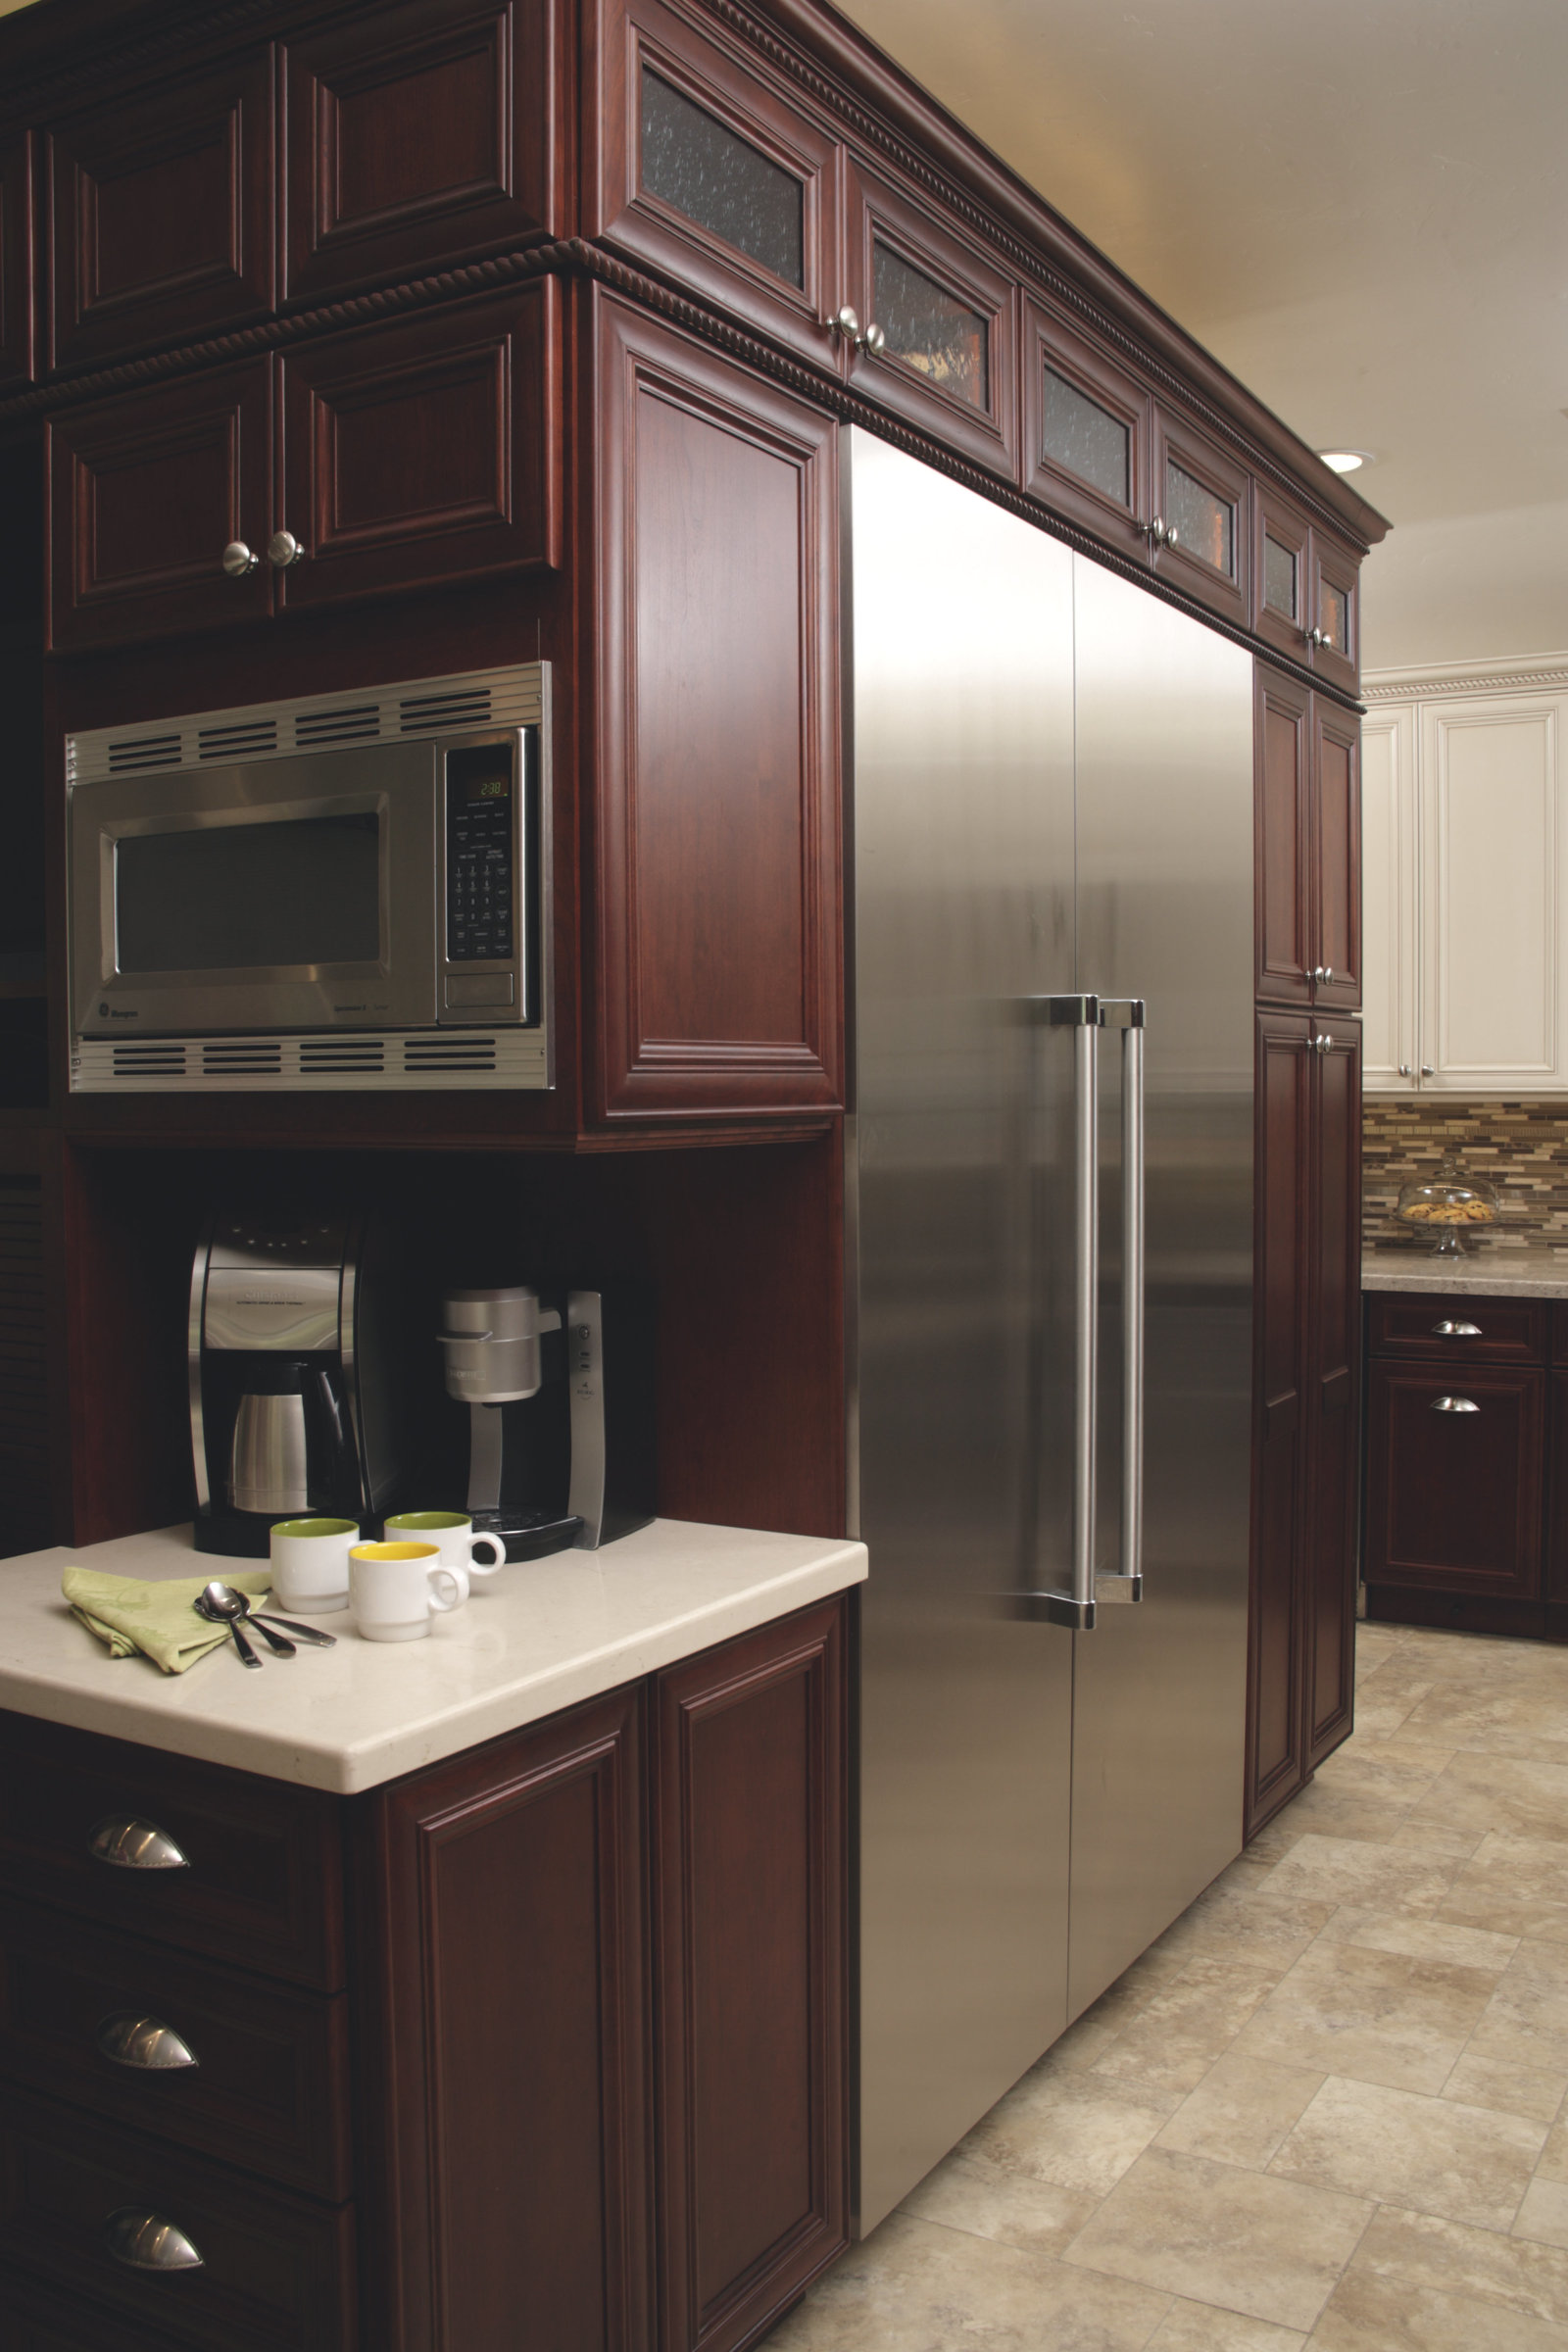 Baker's Dream Kitchen Custom Cabinetry Design